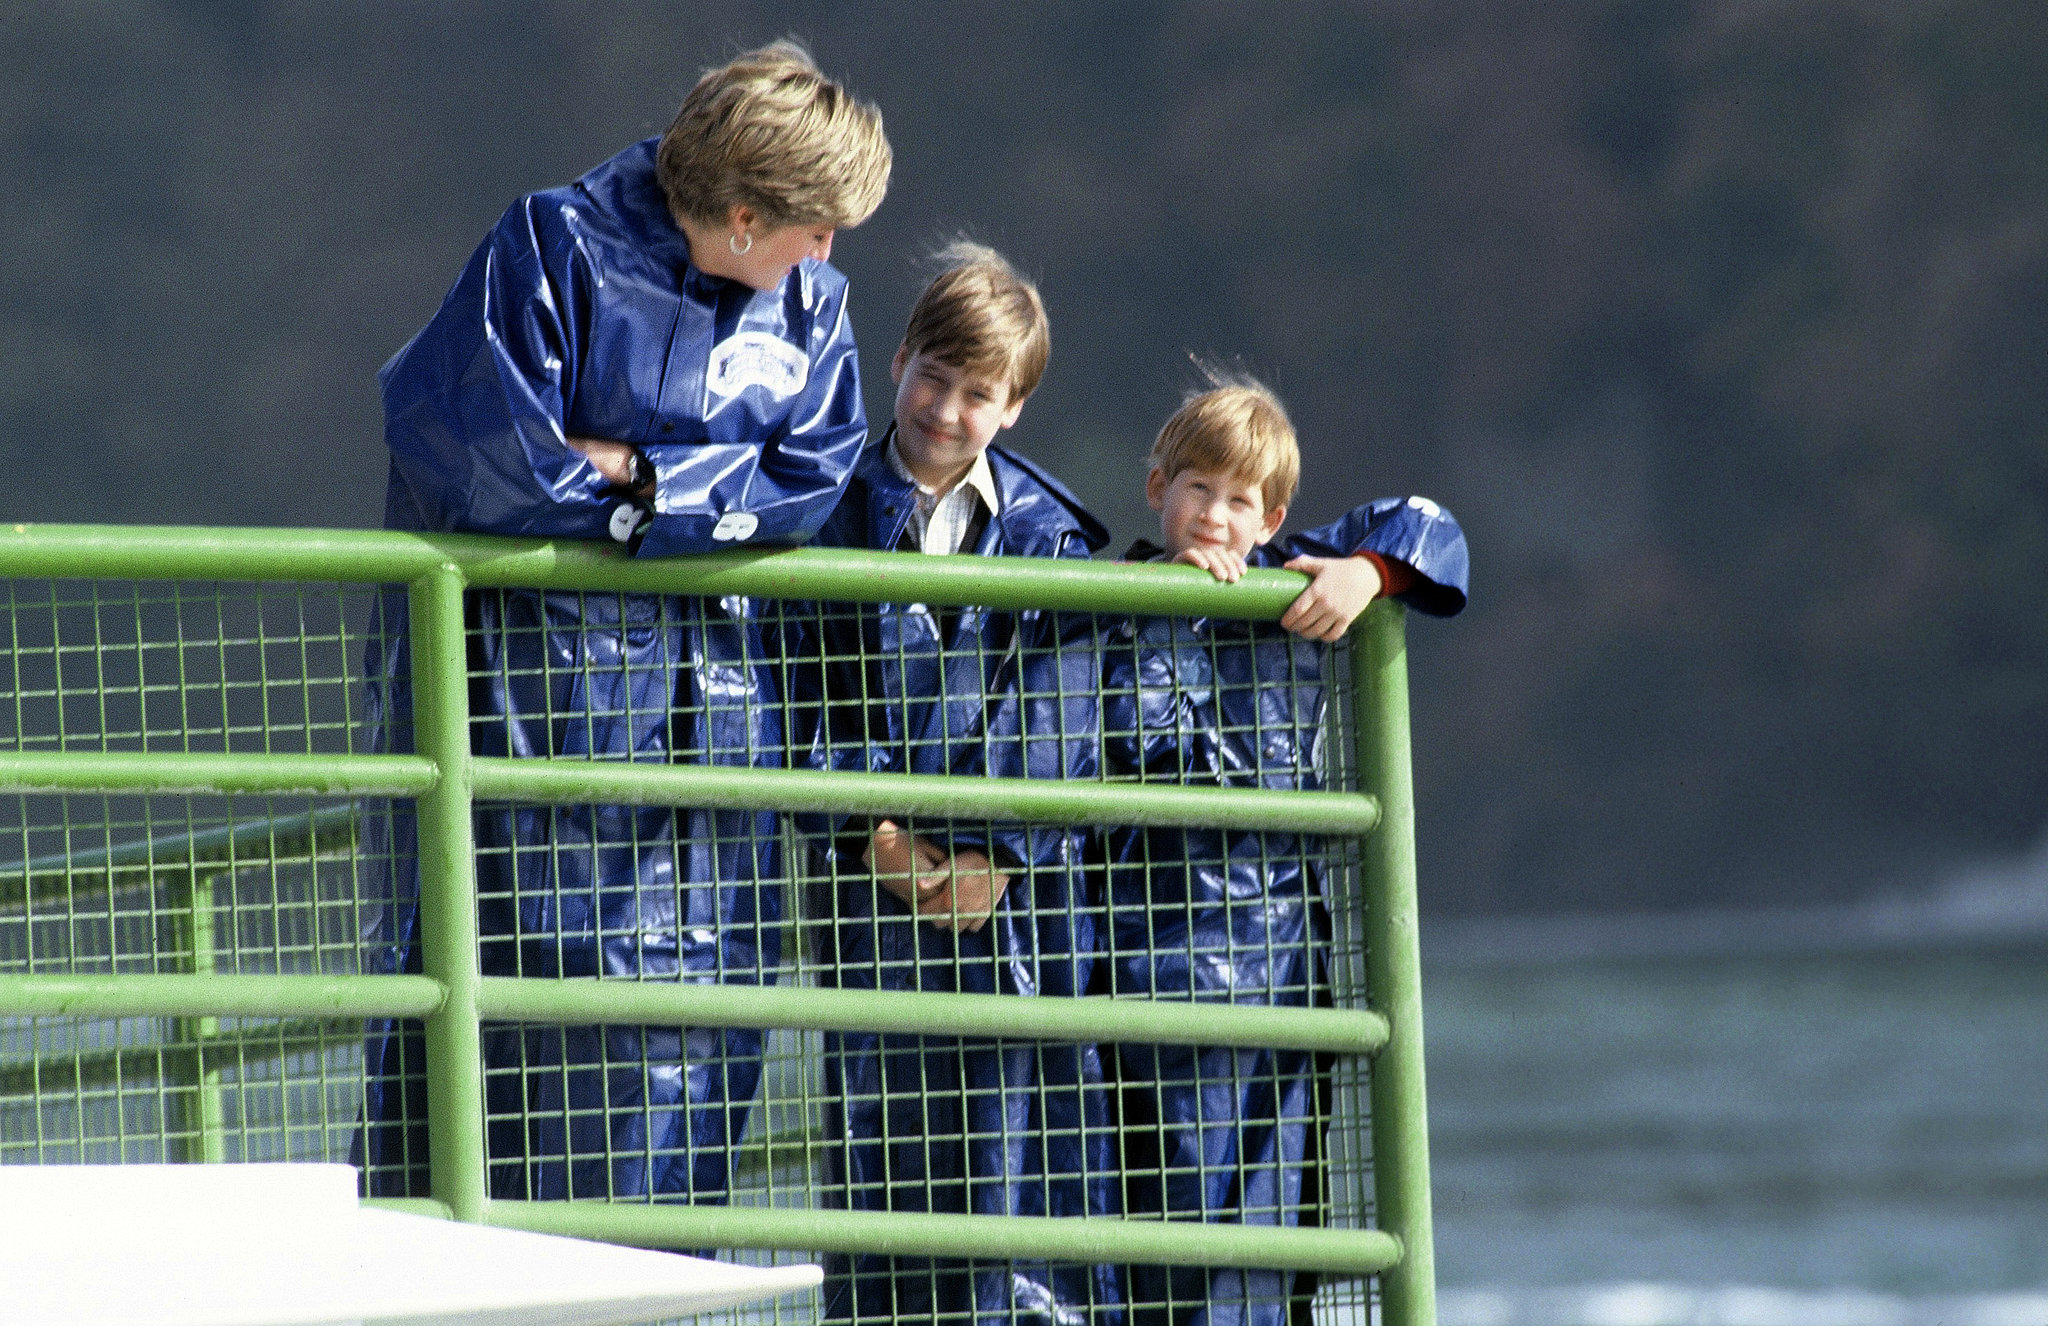 Prince Harry visited Niagara Falls with his mom and brother in October 1991.